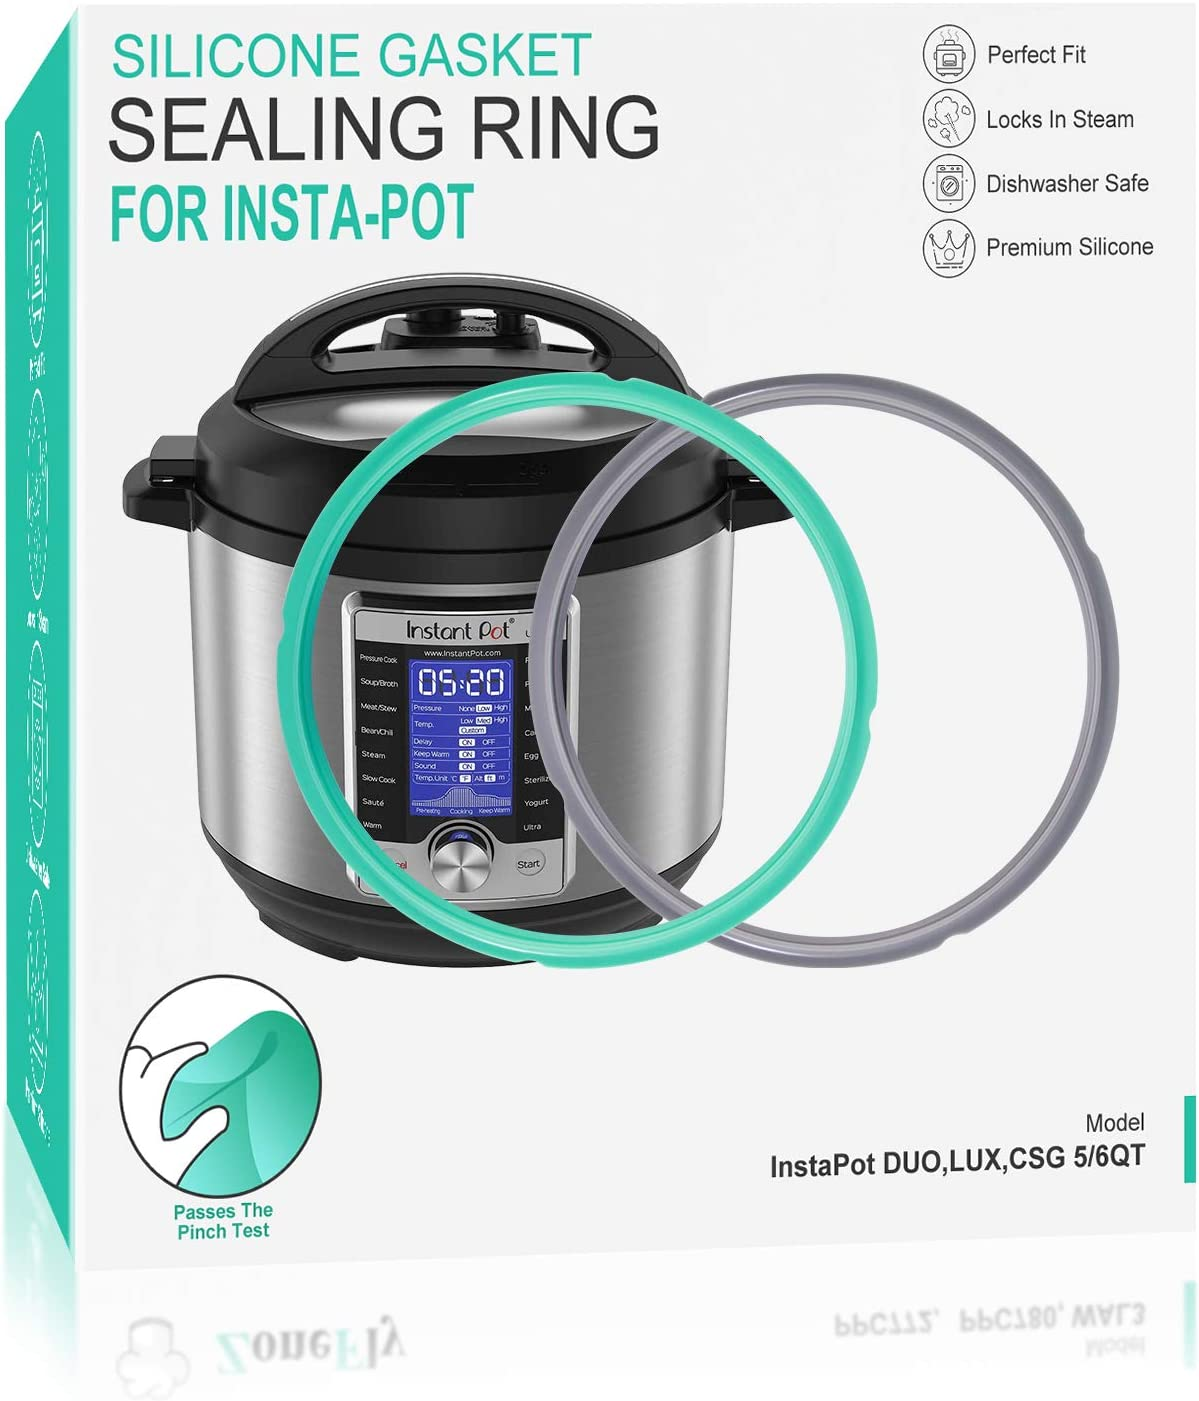 Replacement Ring for Instant Pot 6 Qt - 100% Silicone Gasket Seal Ring for Insta Pot 6 Qt DUO ULTRA LUX Pressure Cooker Ring Support Pinch Test Premium Material - 3 Pack